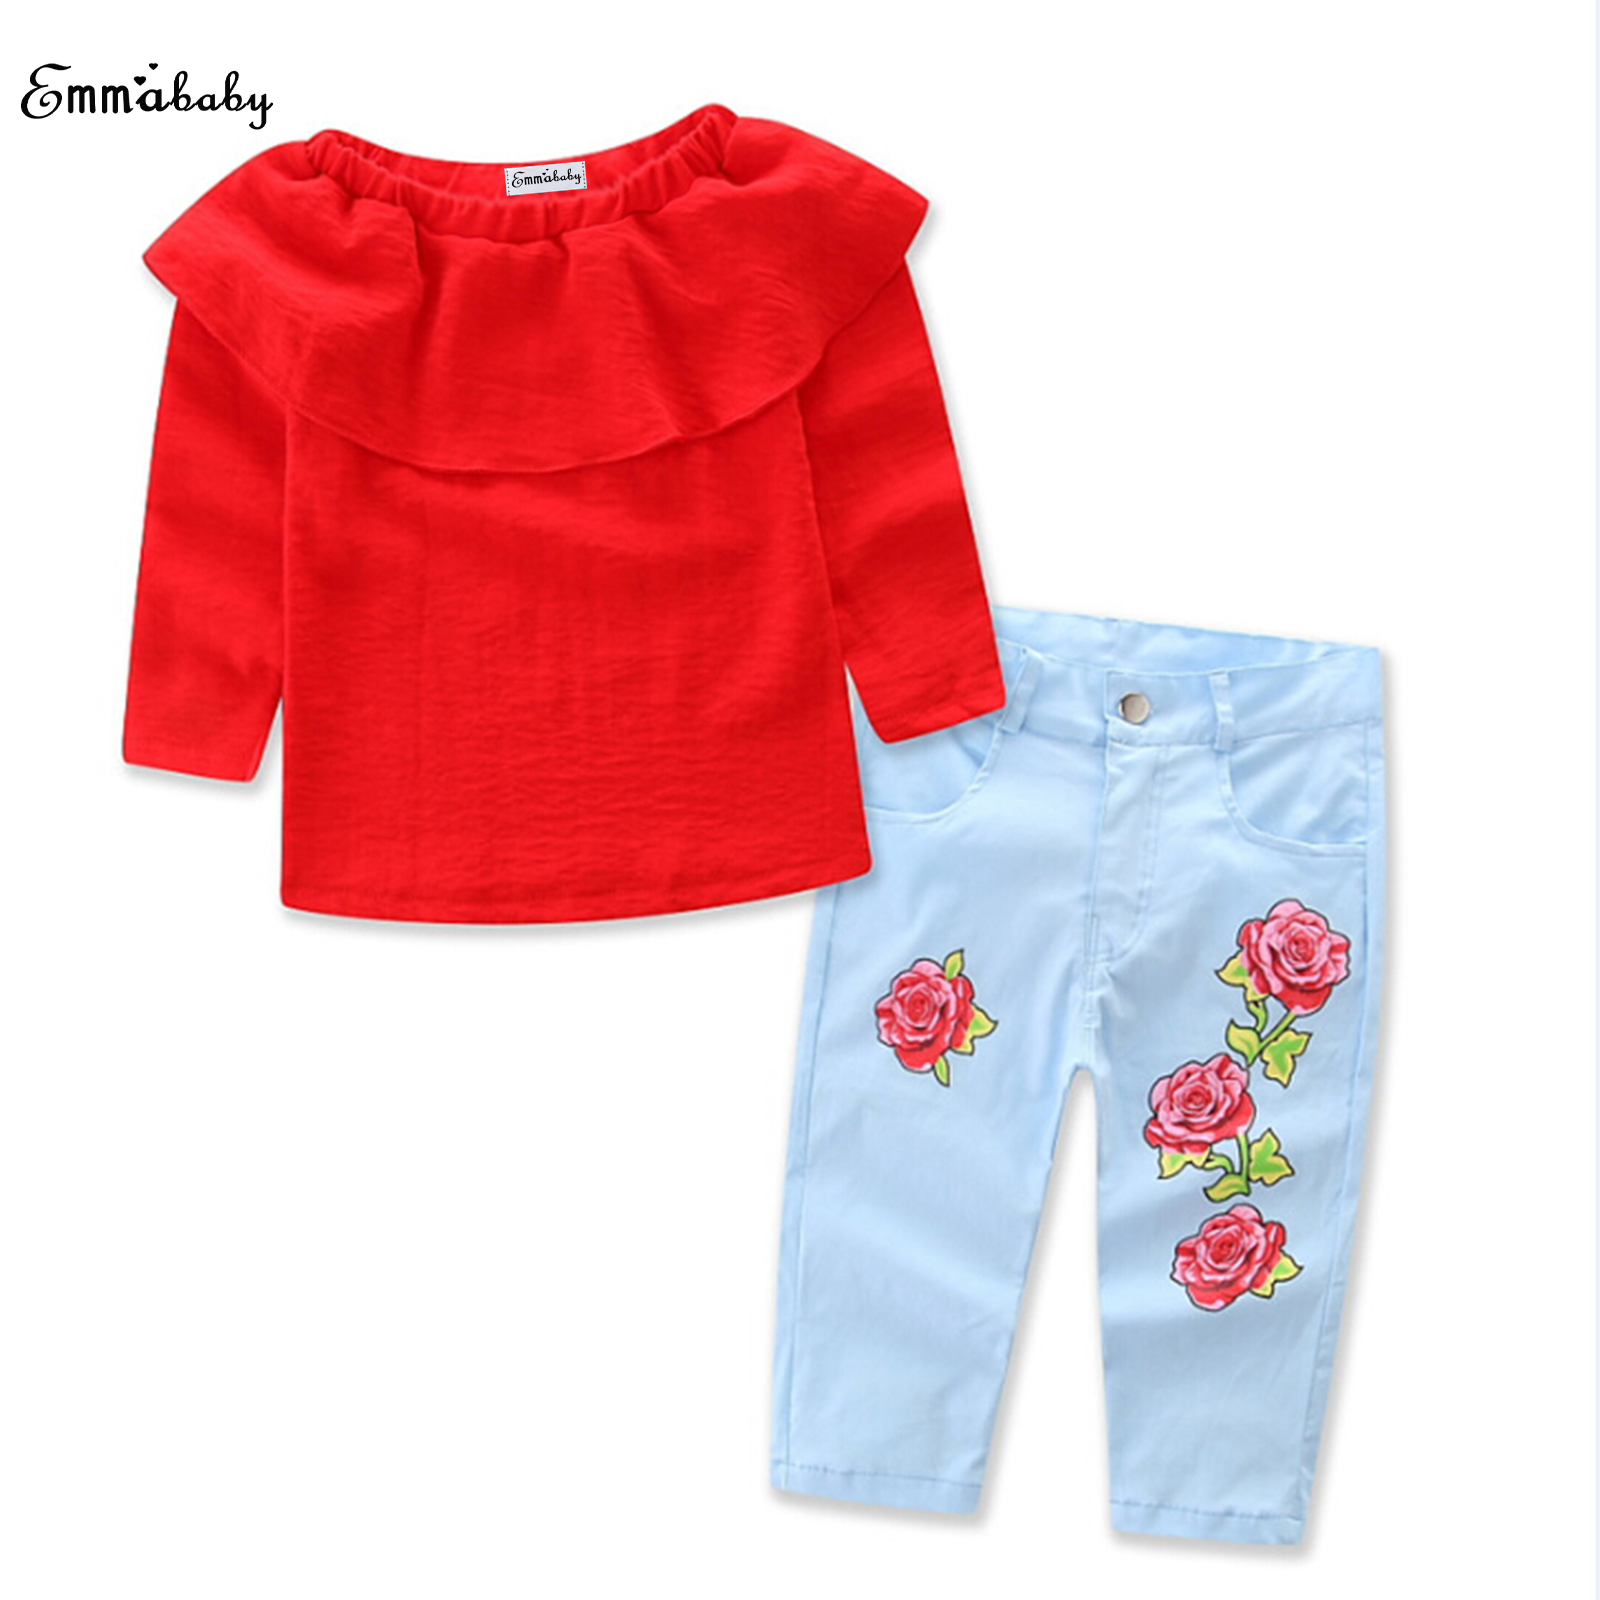 New arrival Toddler Kids Baby Girl long sleeve ruffles red T-Shirt Tops+floral Denim Jeans Pants 2pcs fashion Clothes Outfit Set 2016 new arrival spring denim girl